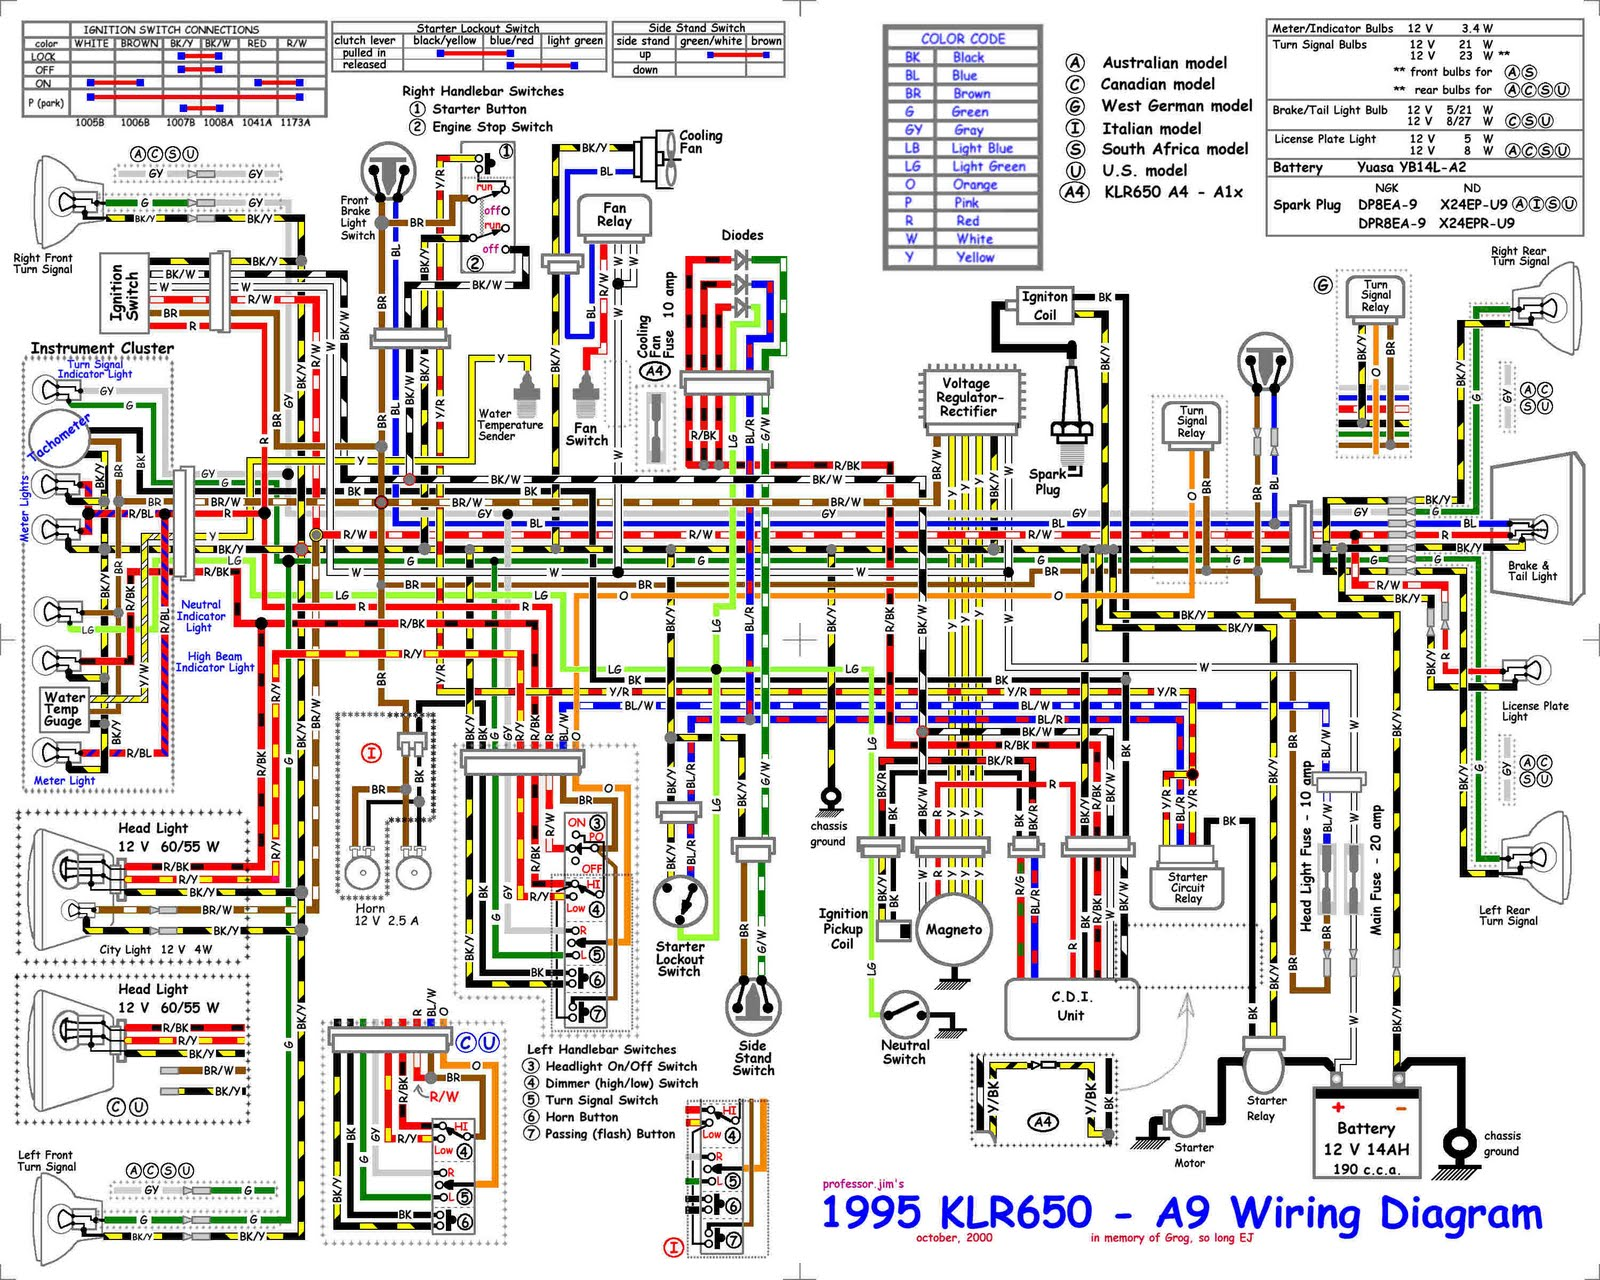 1974 monte carlo wiring diagram free auto wiring diagram 1974 chevrolet monte carlo wiring diagram monte carlo wiring diagram at gsmx.co